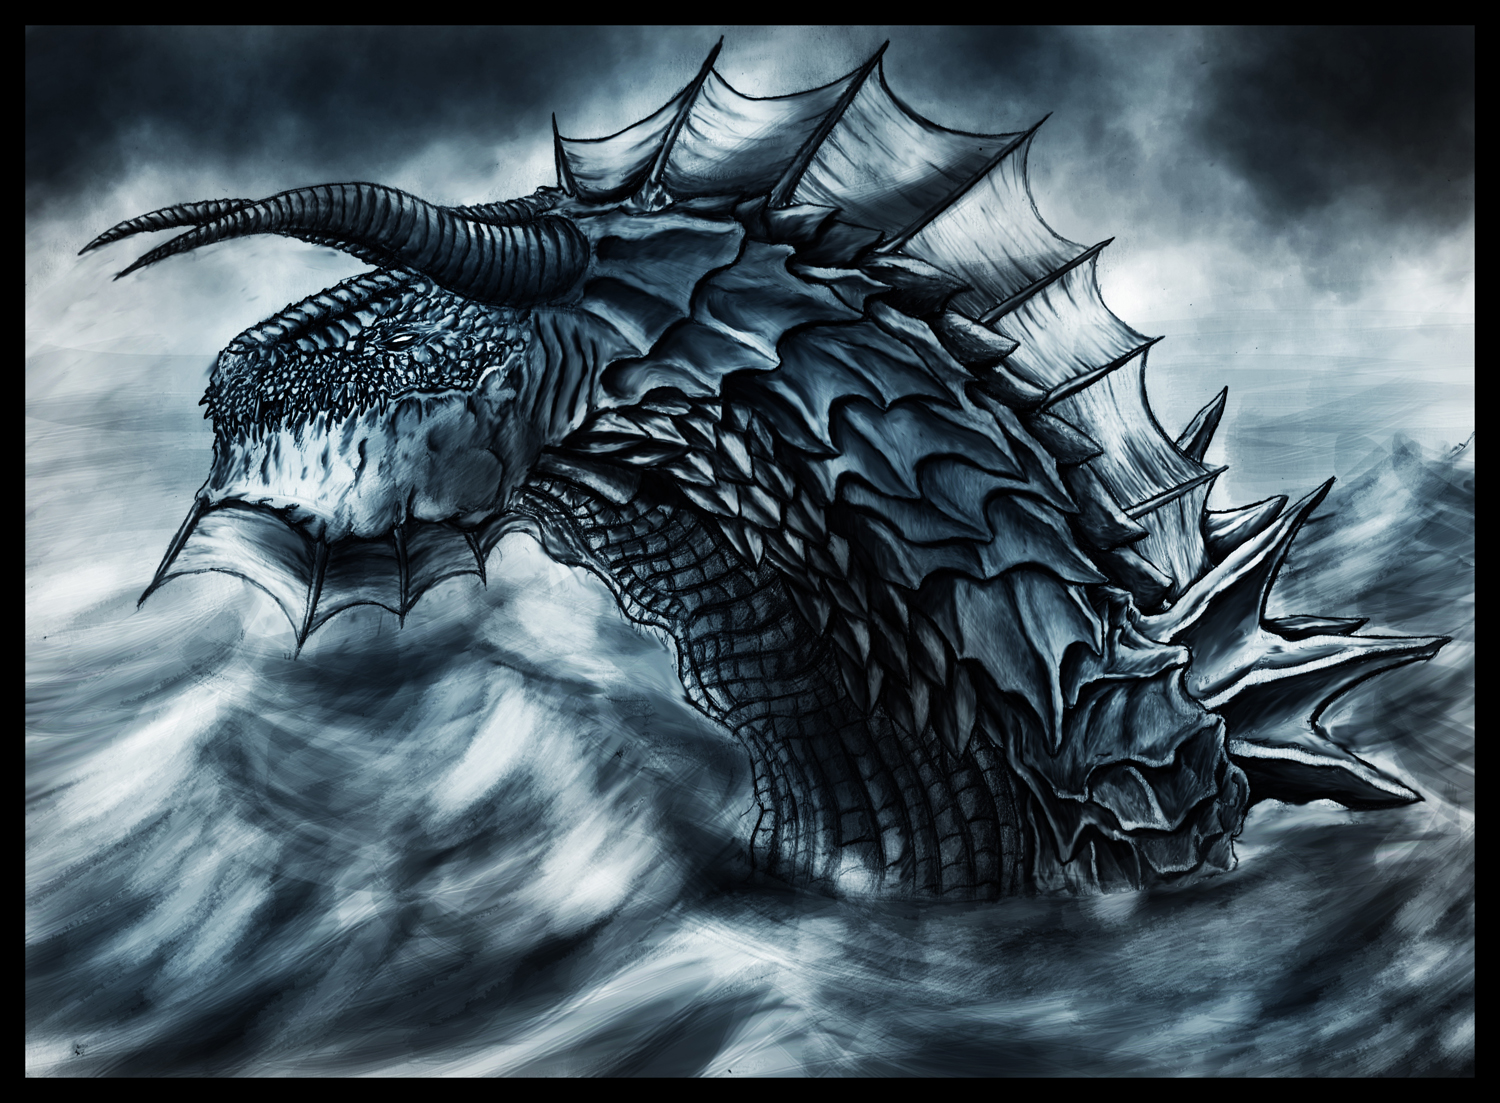 Sea Dragon by StormCross on DeviantArt